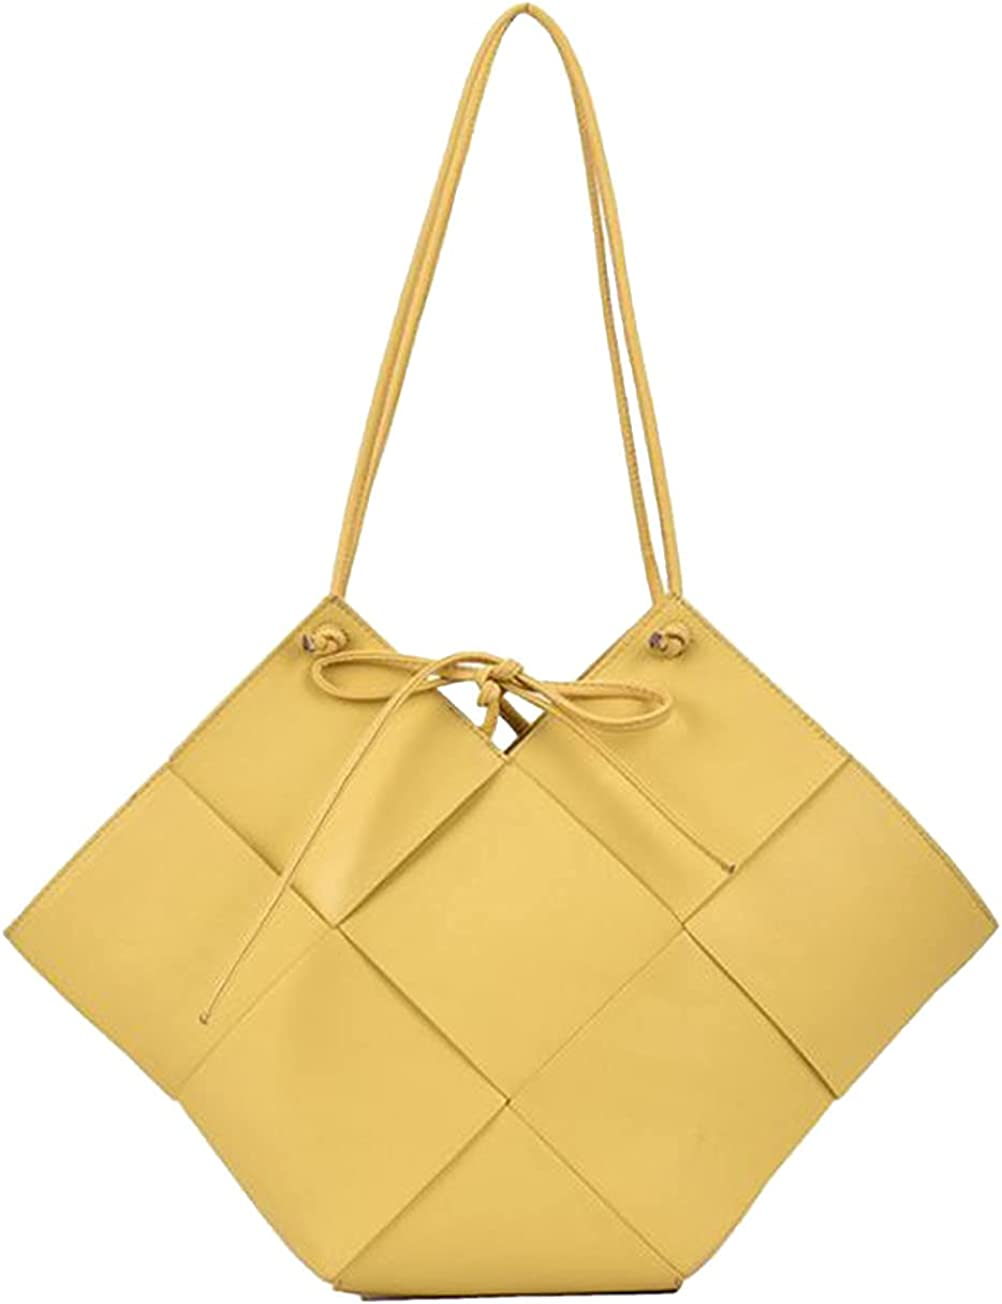 Womens NEW before selling Discount is also underway Top Handle Tote Bags irregular Size Woven Large Shape Pu